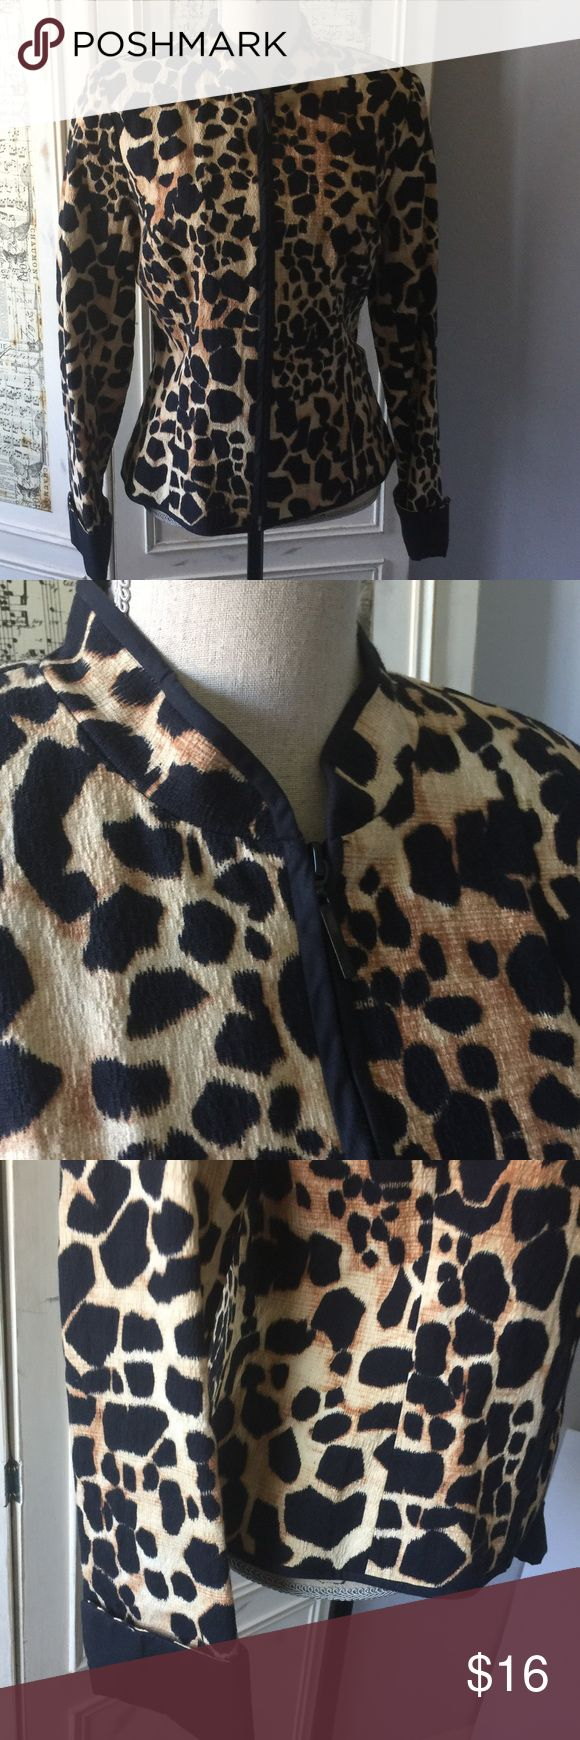 """Maggy London Animal Print zip up jacket Sz 12 Maggy London Women's Animal Print zip up jacket Sz 12.  This beautifully made animal print jacket is a great staple for your closet and will never go out of style. It has a very slimming line.. Front zipper.  Fully lined. It is very comfortable and has stretch as it's 98% cotton and 2% spandex.  Lining is 100 acetate.  Perfect condition, no damage.  Measures 24"""" in length. Bust approx 38"""", Waist approx. 37"""". Hem across bottom approx. 38""""…"""